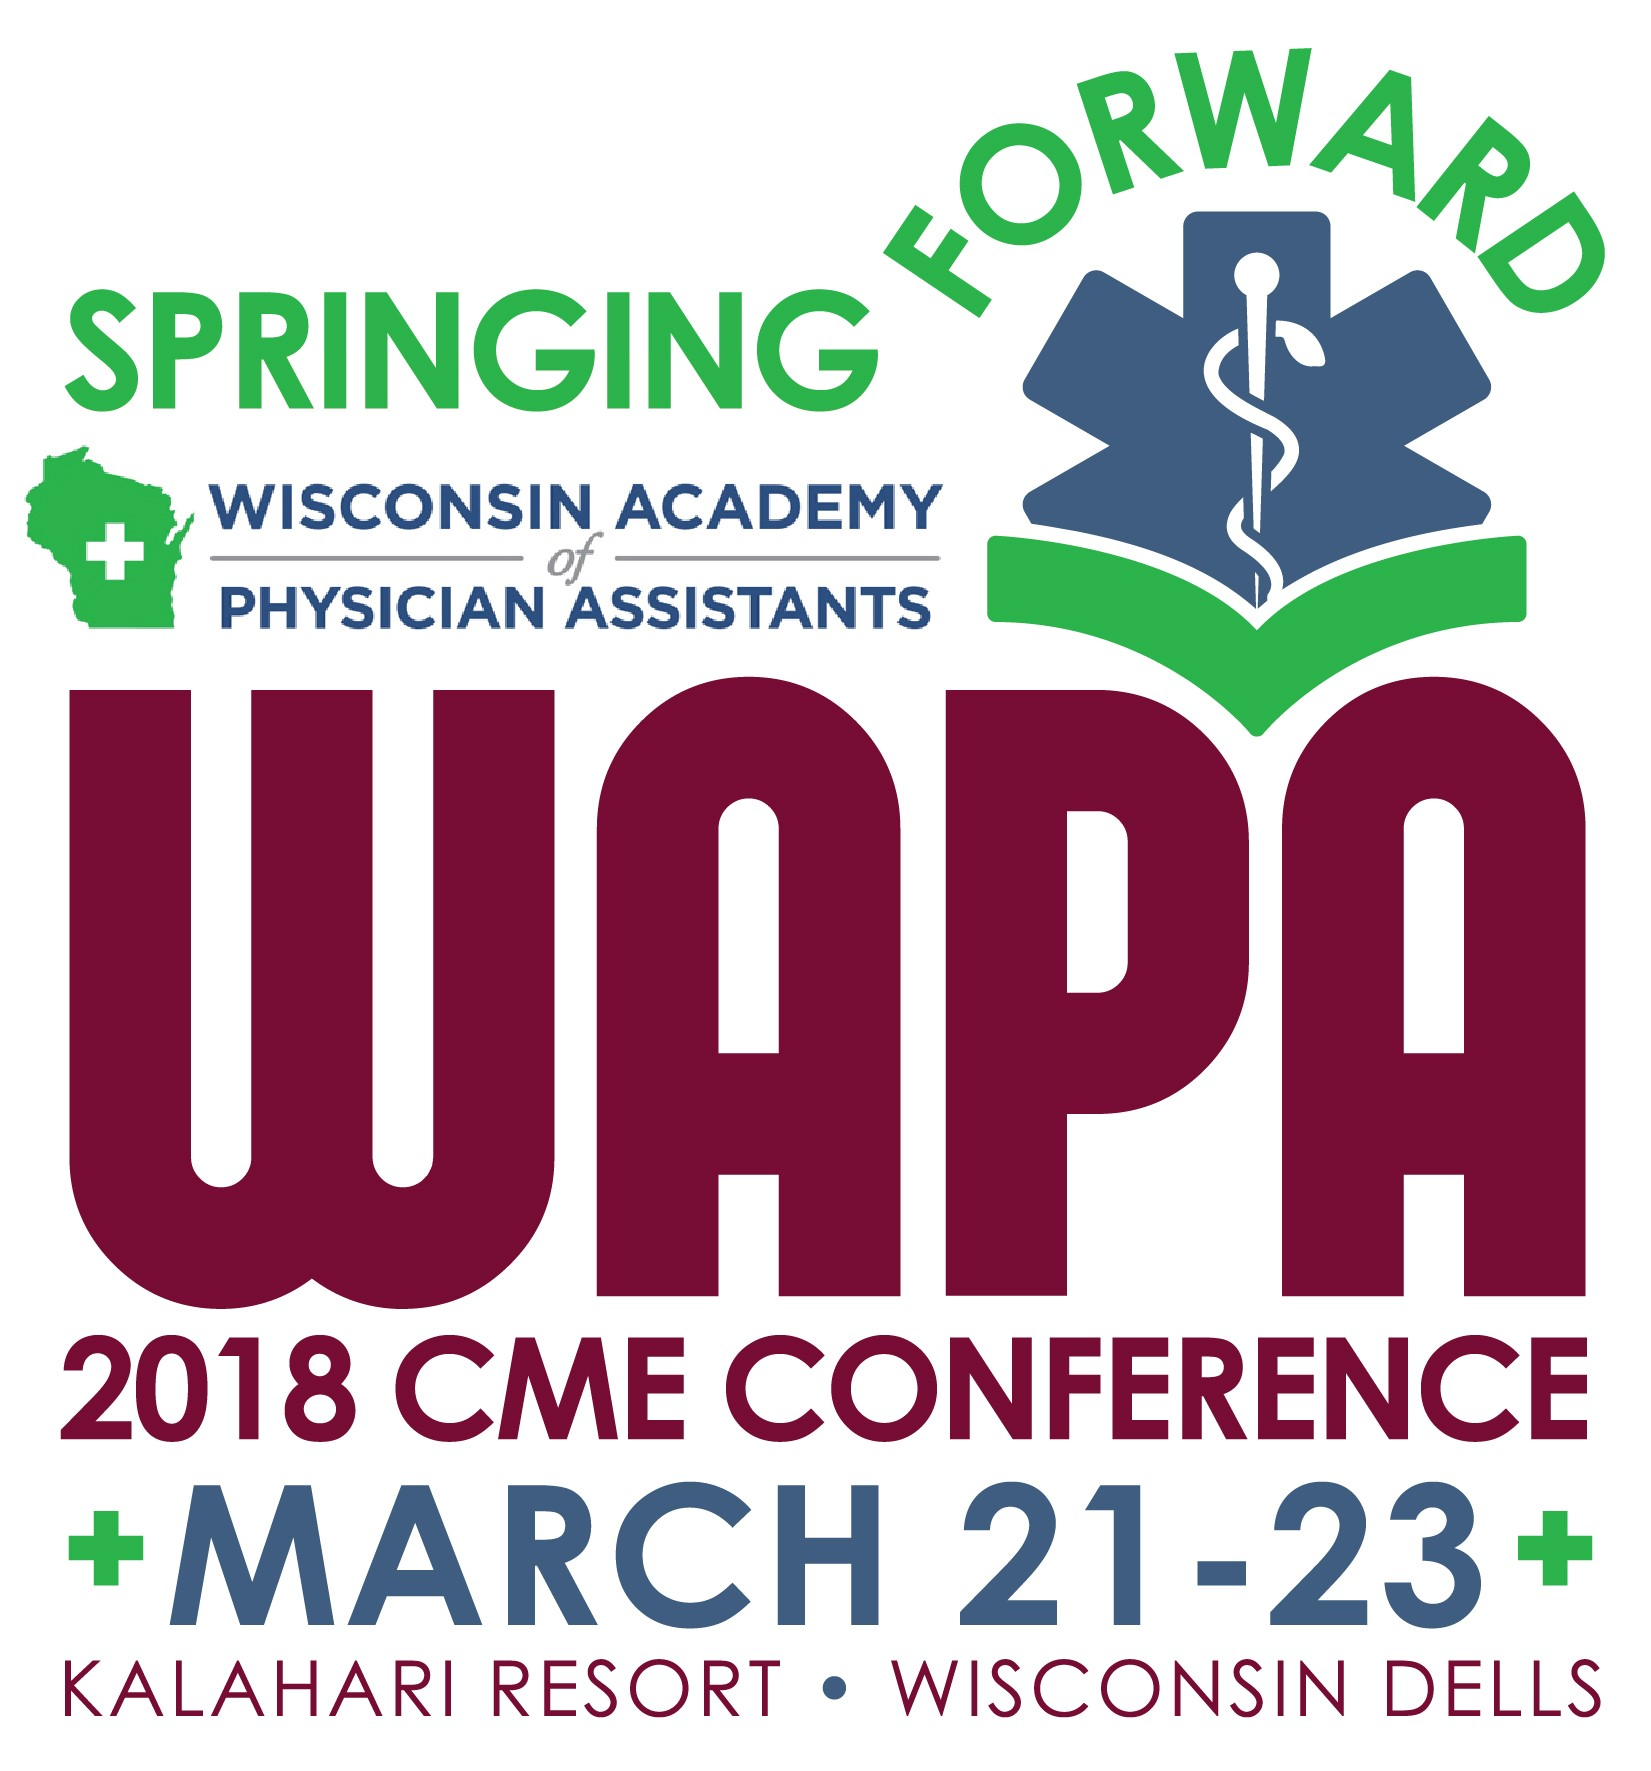 WAPA Spring Conference March 21-23, 2018